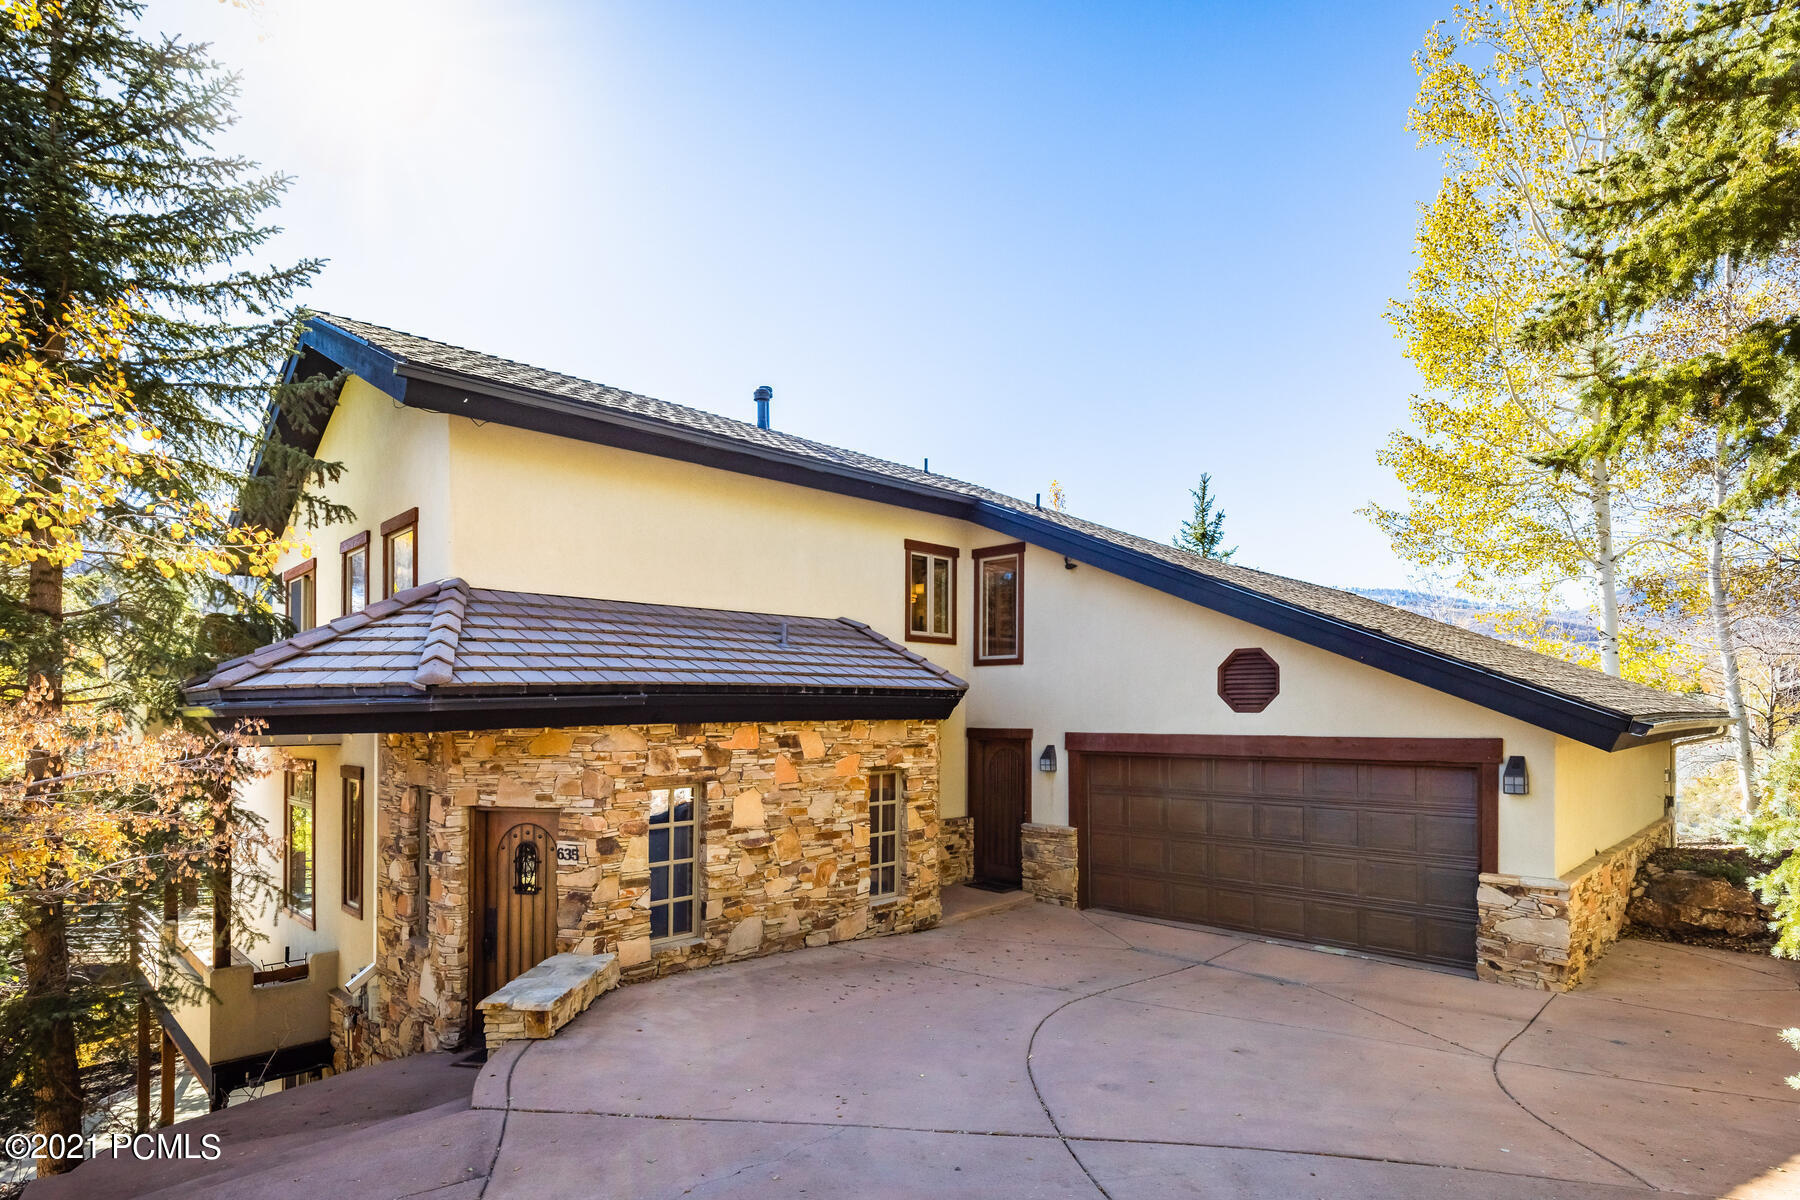 635 Mellow Mountain Road, Park City, Utah 84060, 3 Bedrooms Bedrooms, ,4 BathroomsBathrooms,Single Family,For Sale,Mellow Mountain,12104208